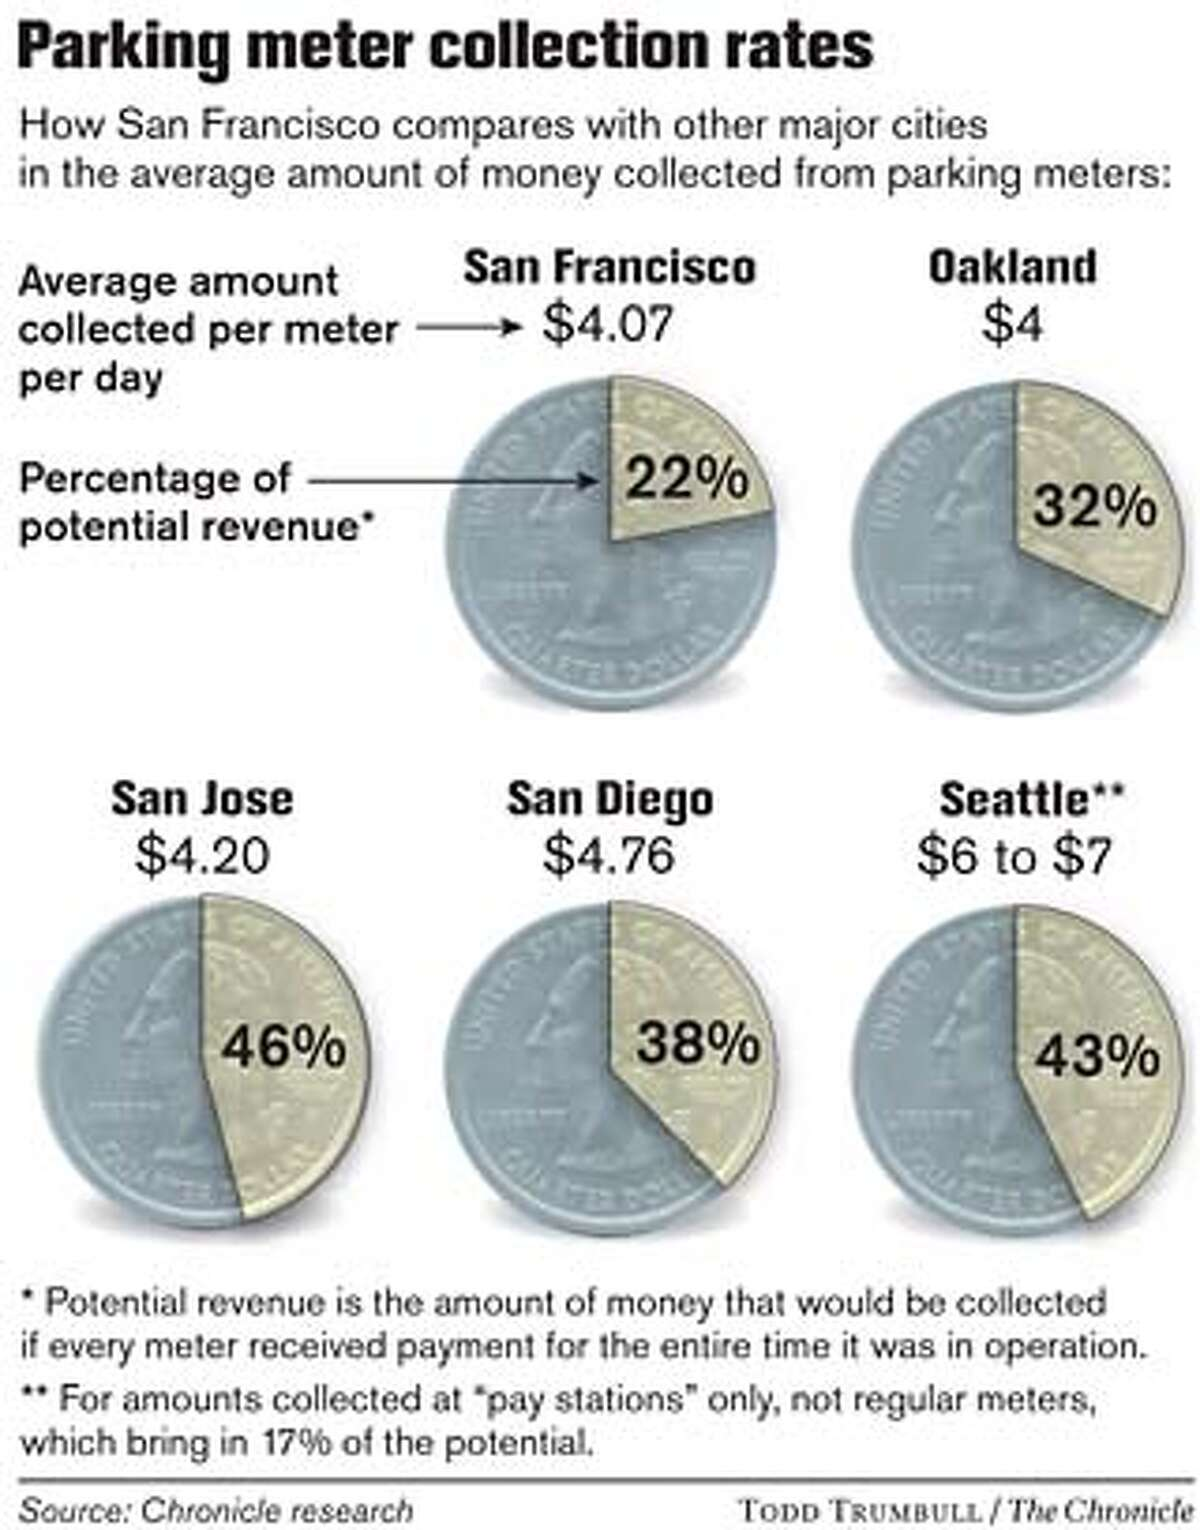 Parking Meter Collection Rates. Chronicle graphic by Todd Trumbull